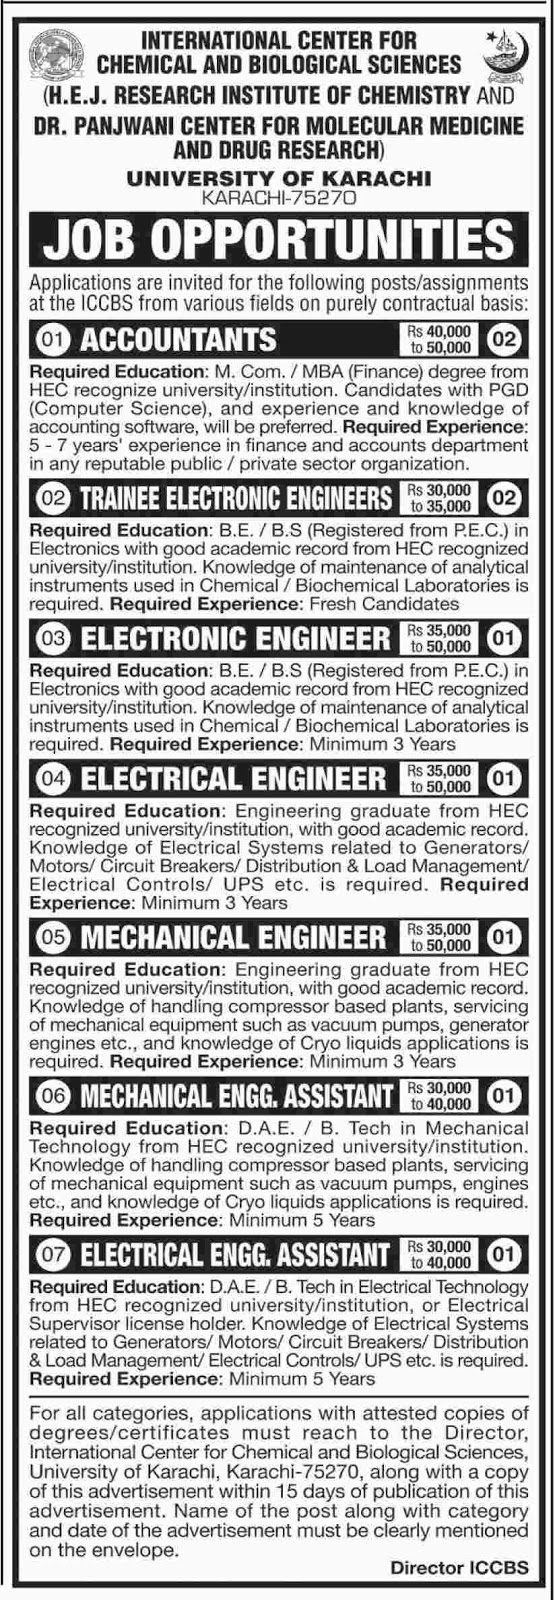 Jobs In University Of Karachi April 2018 for Electrical Engineer, Mechanical Engineer